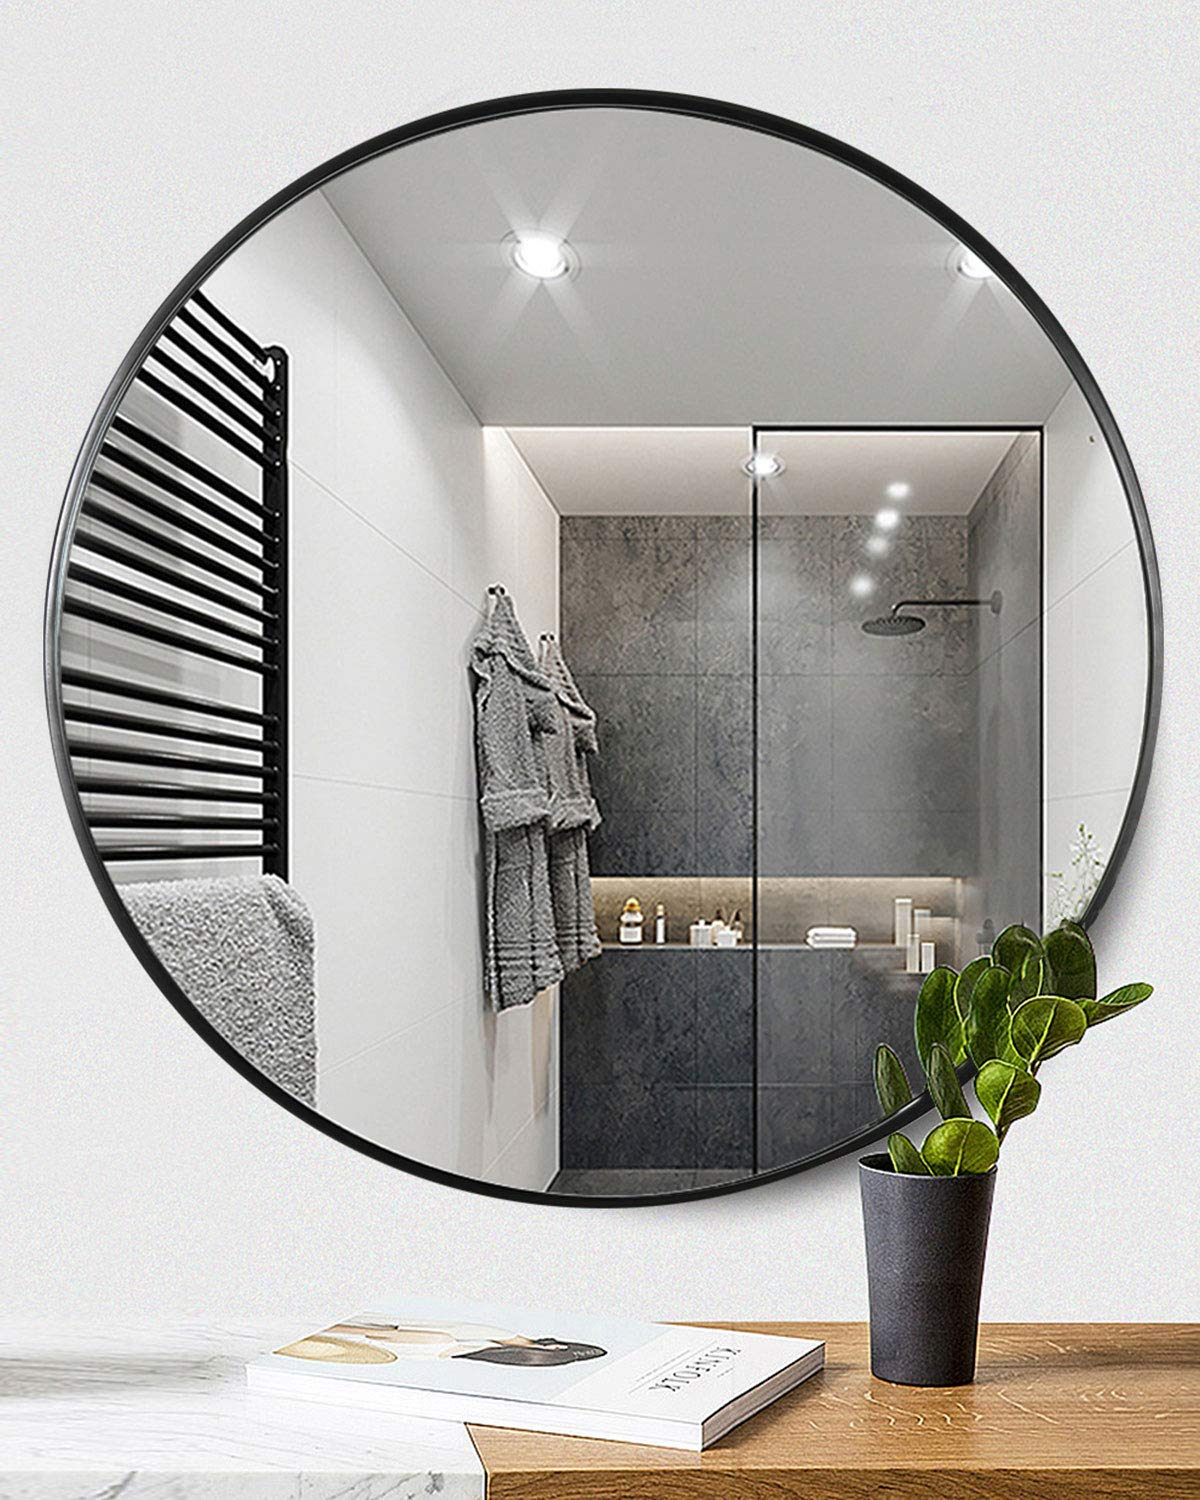 TinyTimes 23.63 Inch Round Mirror, Modern Accent Wood Frame, Large Vanity Mirror, for Entryways, Living Rooms, Bathroom, Home Mirrors Decor, Circle Wall Mirror - Black